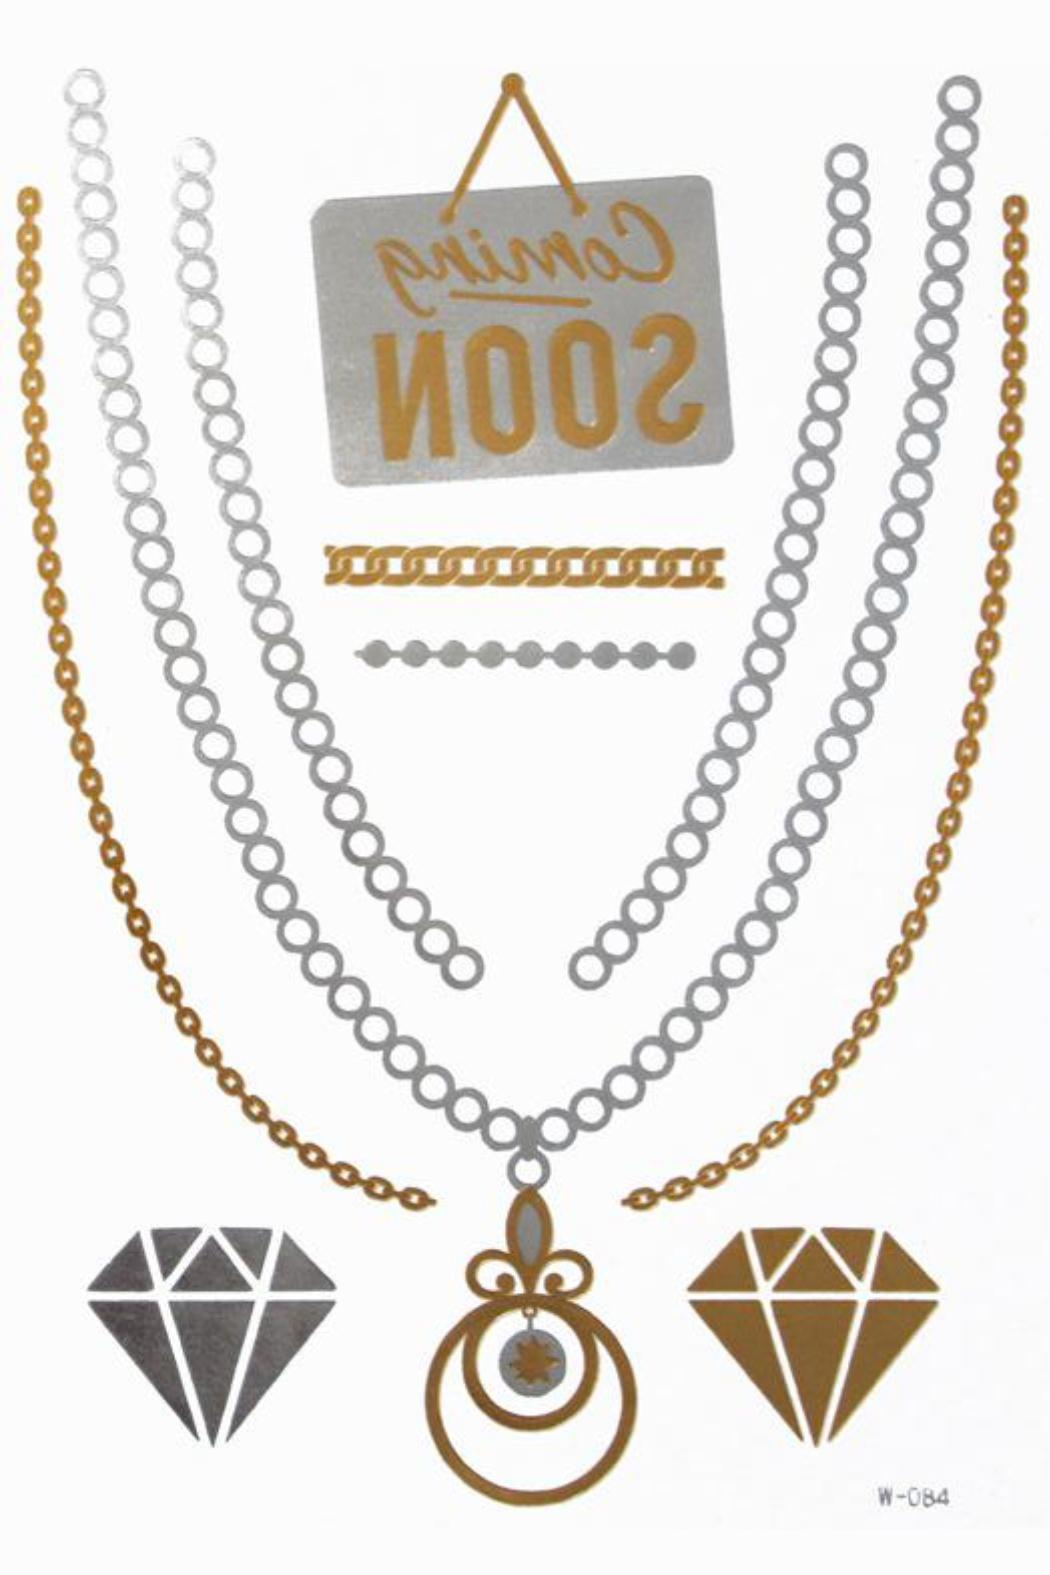 Violet Del Mar Gold Jewelry Tattoos - Main Image